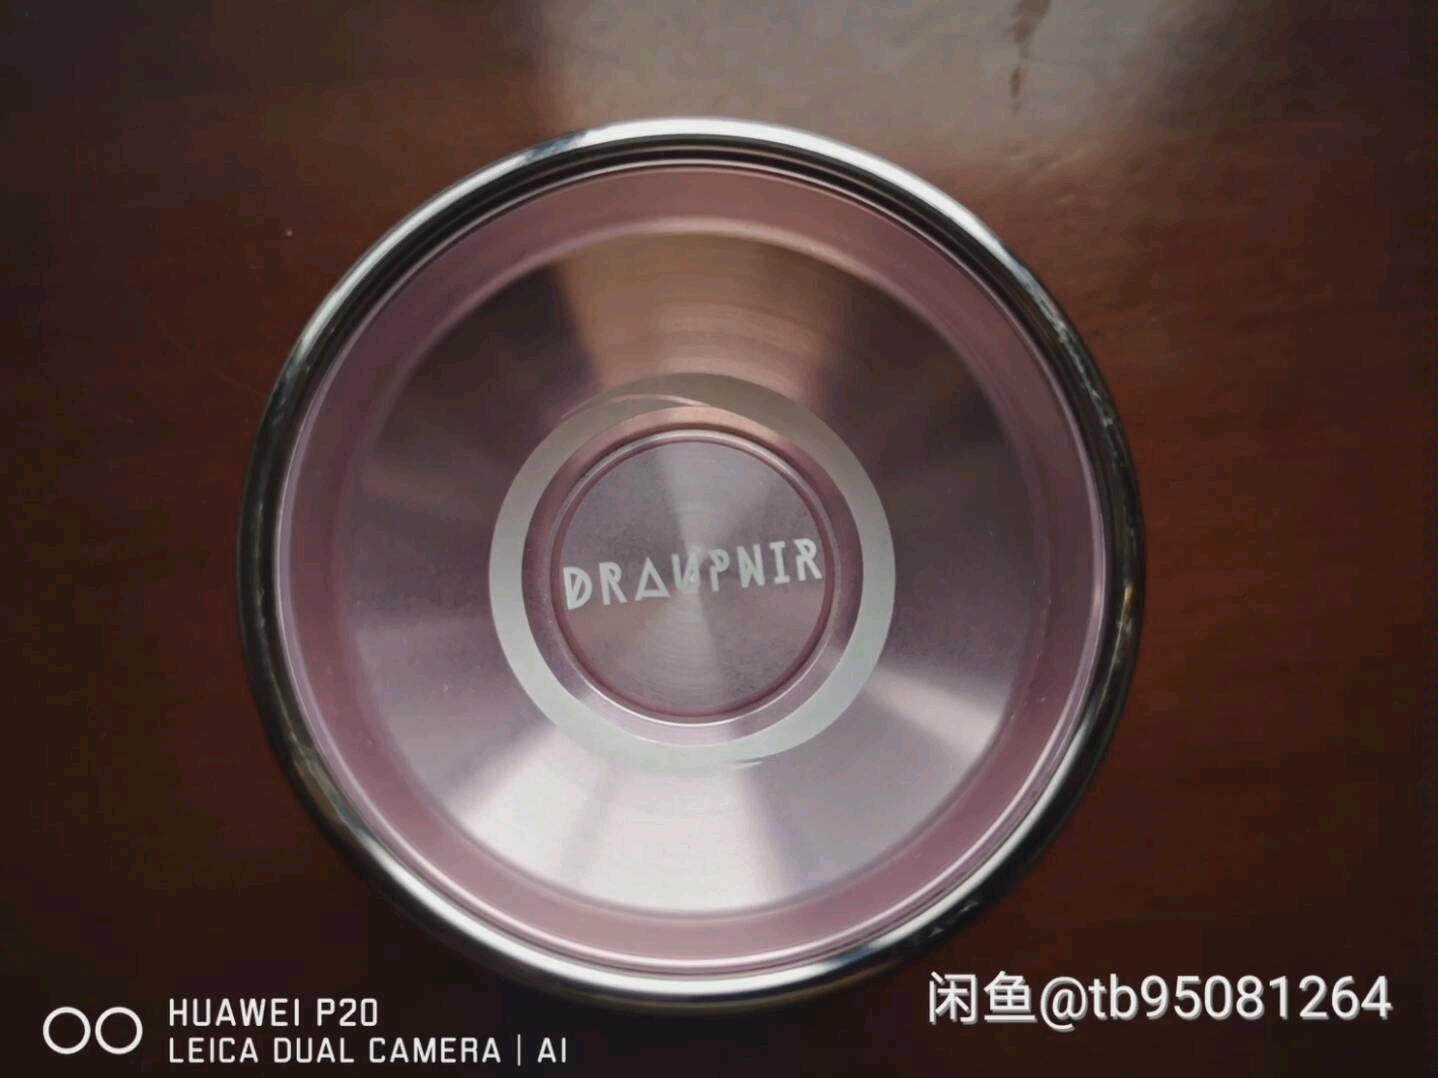 Yoyorecreation 滴落者DRAUPINR  好看ing